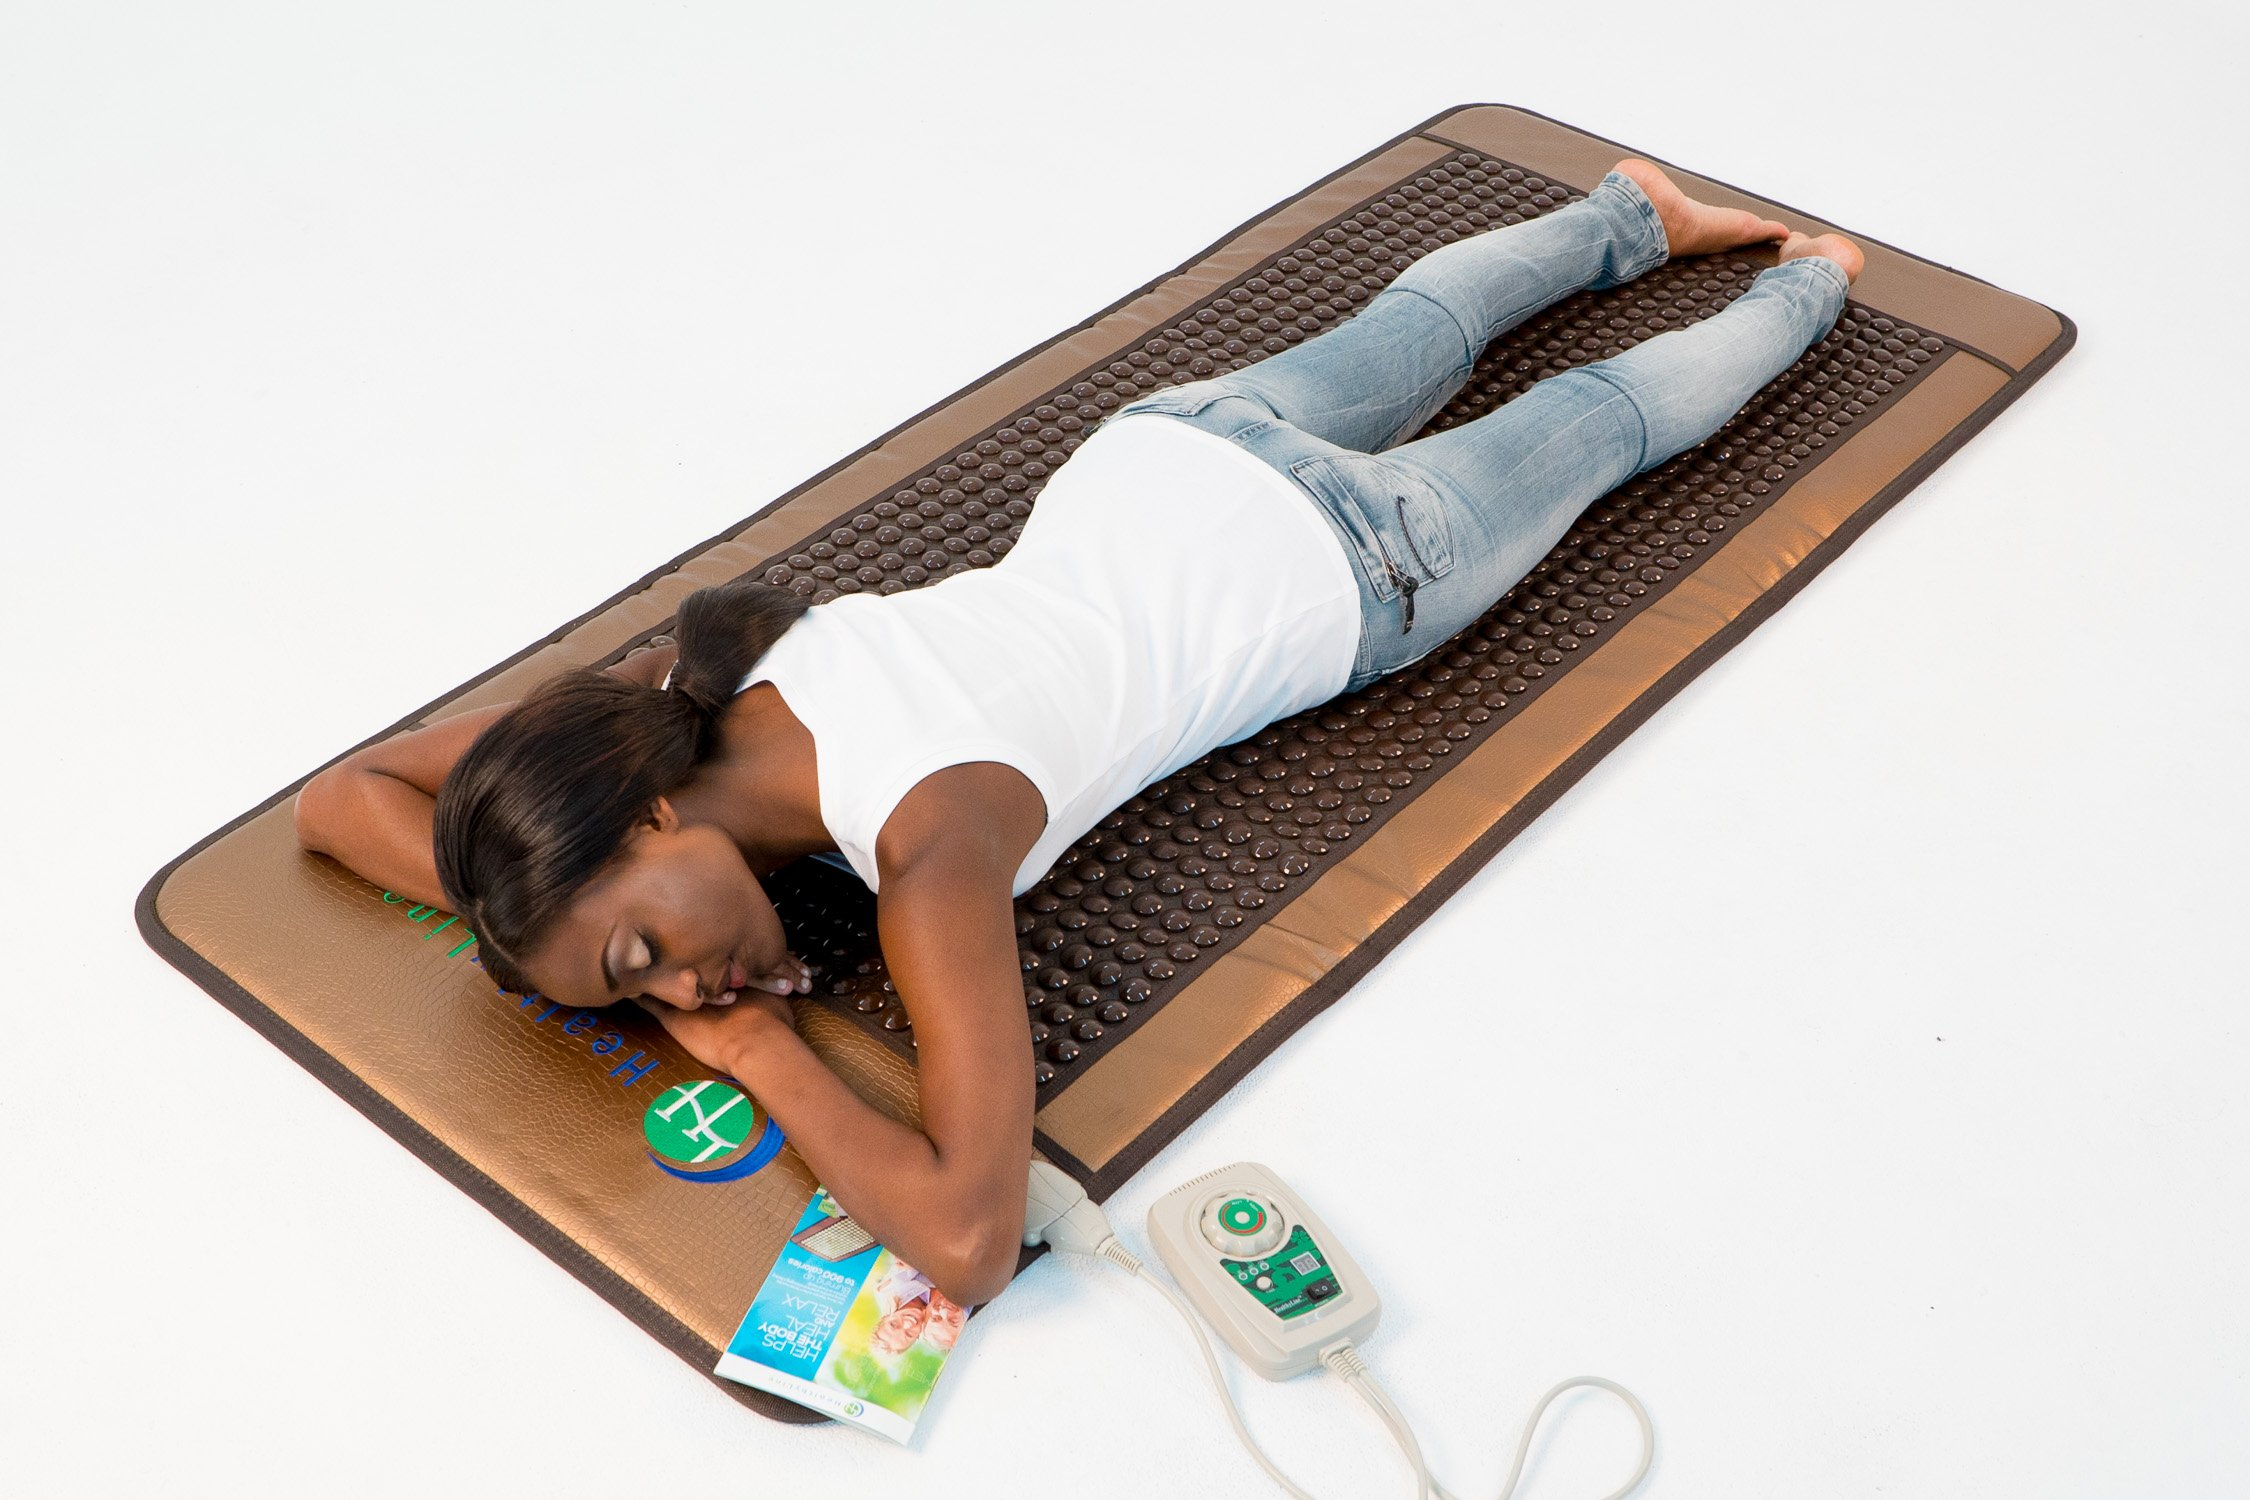 HealthyLine Far Infrared Heating Mat - For Pain Relief, Stress & Insomnia 76'' x 32'' | Natural Tourmaline Stone | Negative Ions (XL & Firm) | FDA Registered by HealthyLine (Image #7)